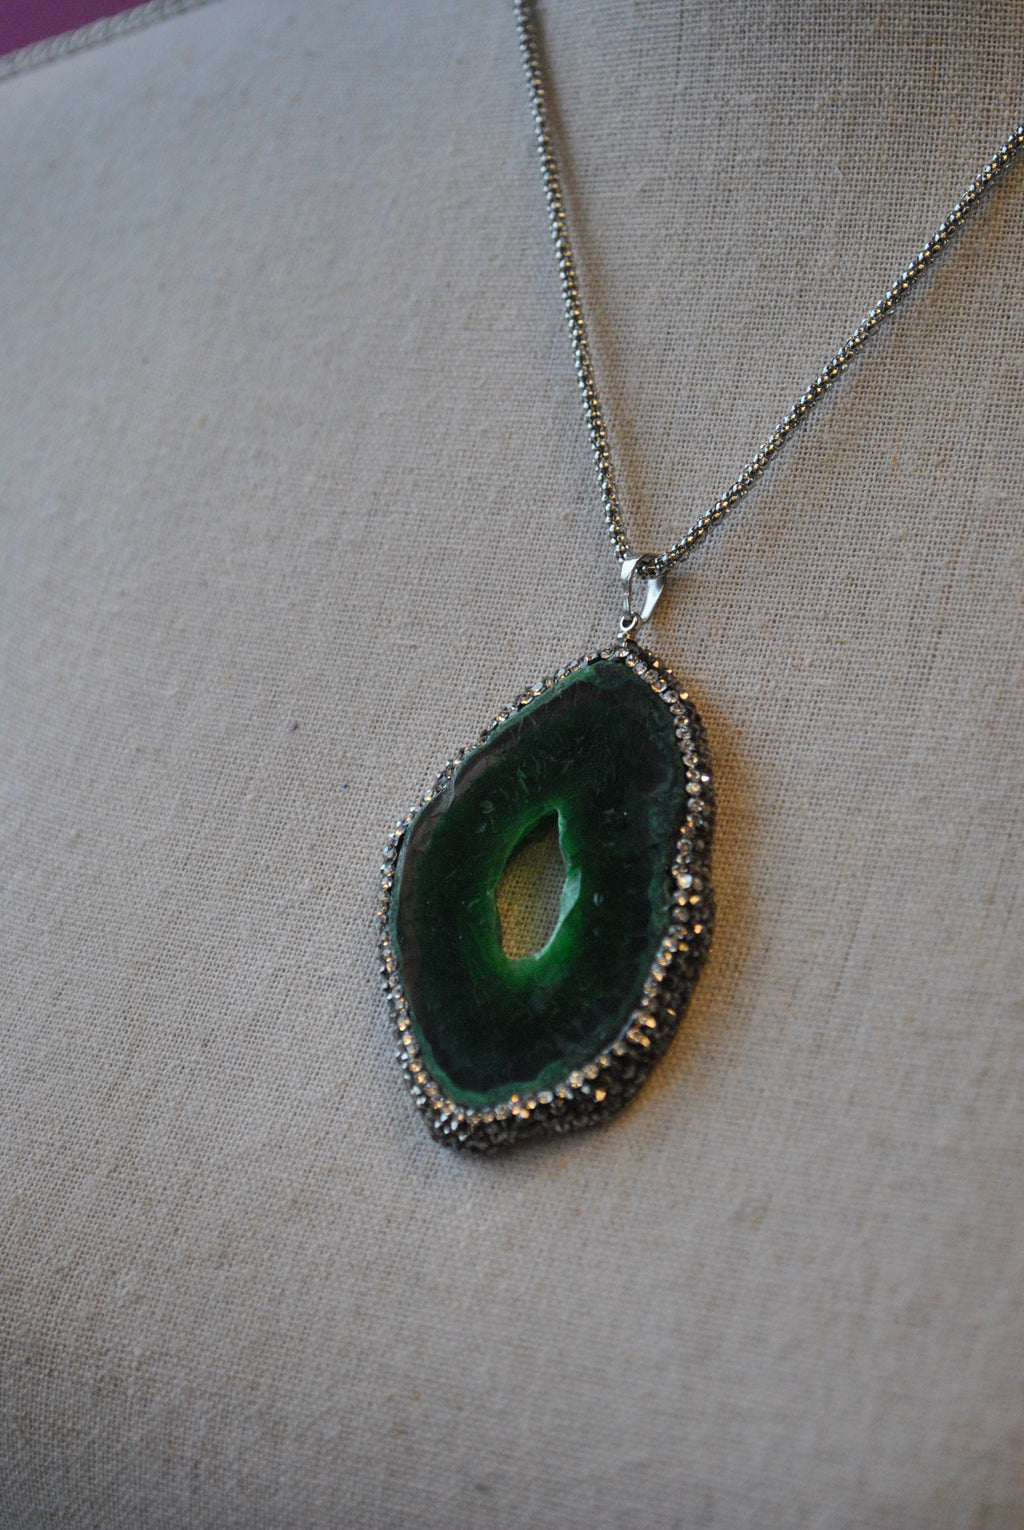 GREEN AGATE FREEFORM WITH SWAROVSKI CRYSTALS LONG CHAIN PENDANT